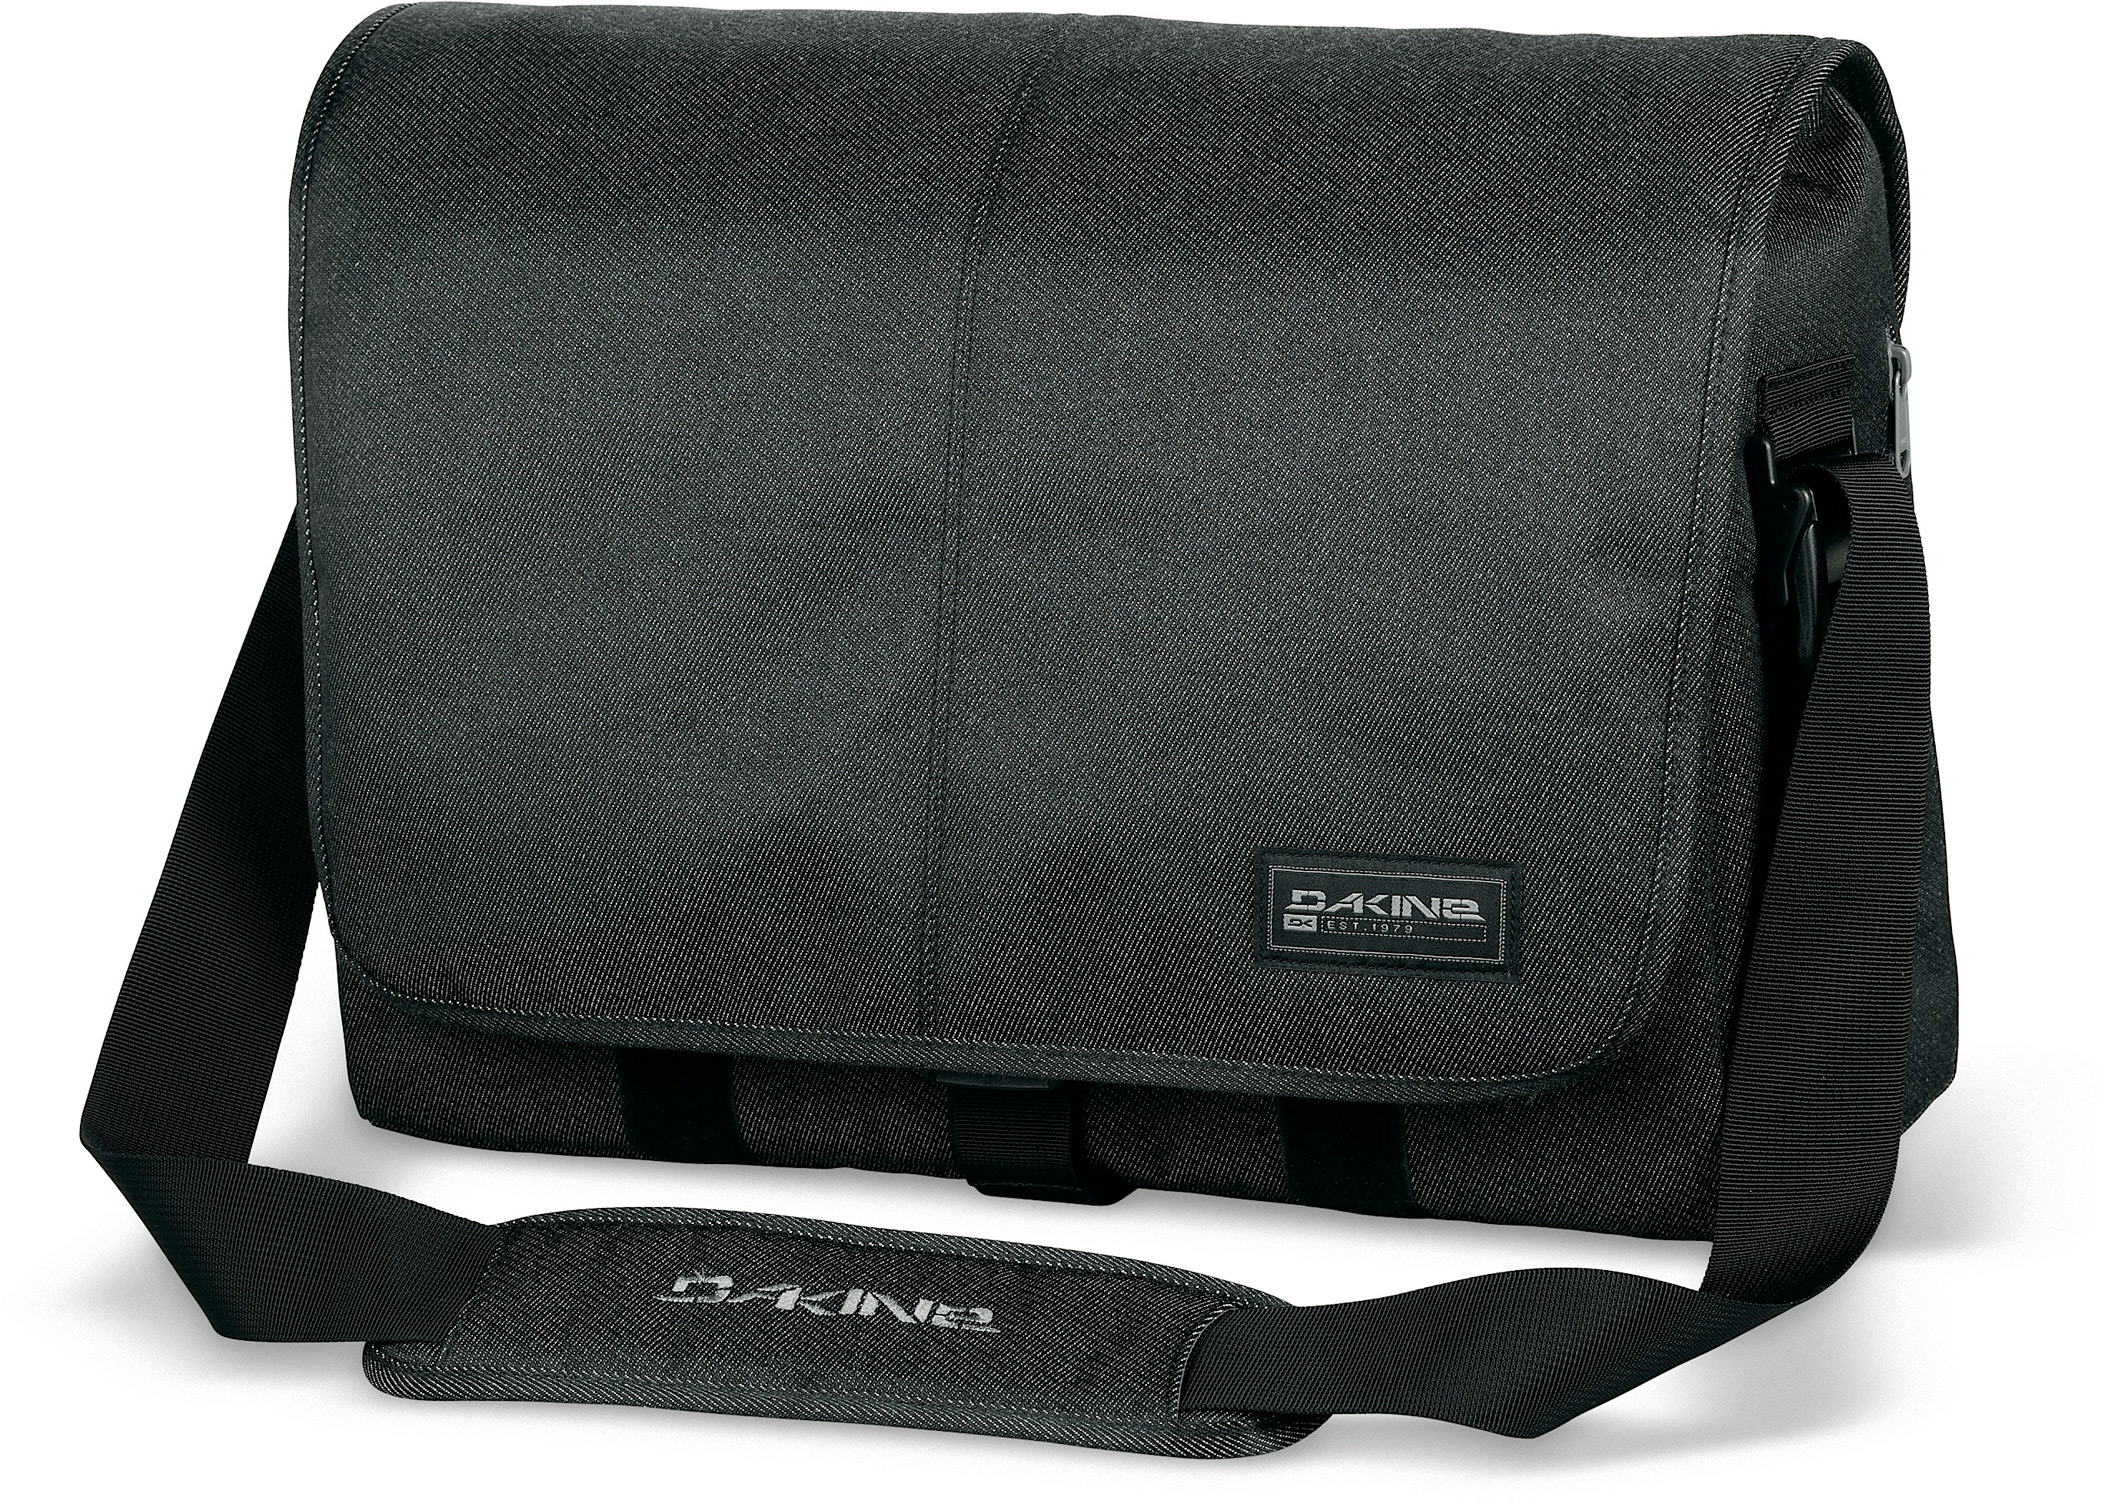 "Surf Key Features of the Dakine Exchange Messenger Bag: Padded sleeve fits most 17"" laptops Adjustable padded shoulder strap Internal organizer pockets 1350 cu.in. [ 22 L ] 18 x 12.5 x 6"" [ 46 x 32 x 15cm ] 600D Polyester - $34.95"